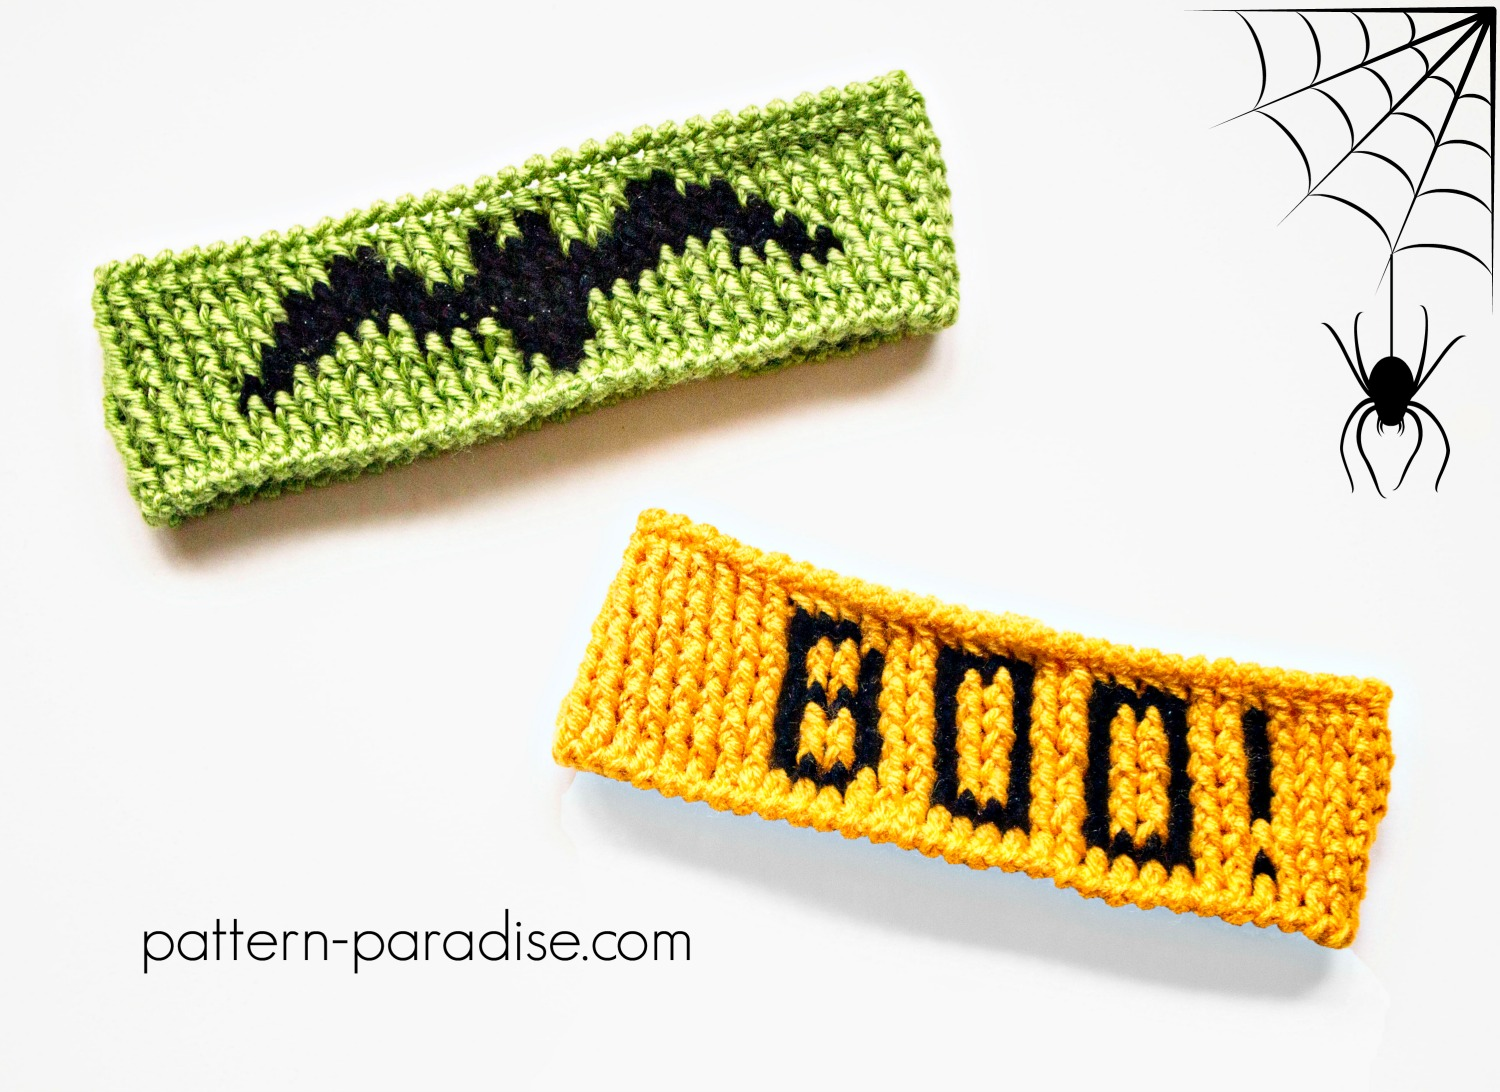 Free Crochet Pattern: Halloween Graph Headband | Pattern Paradise